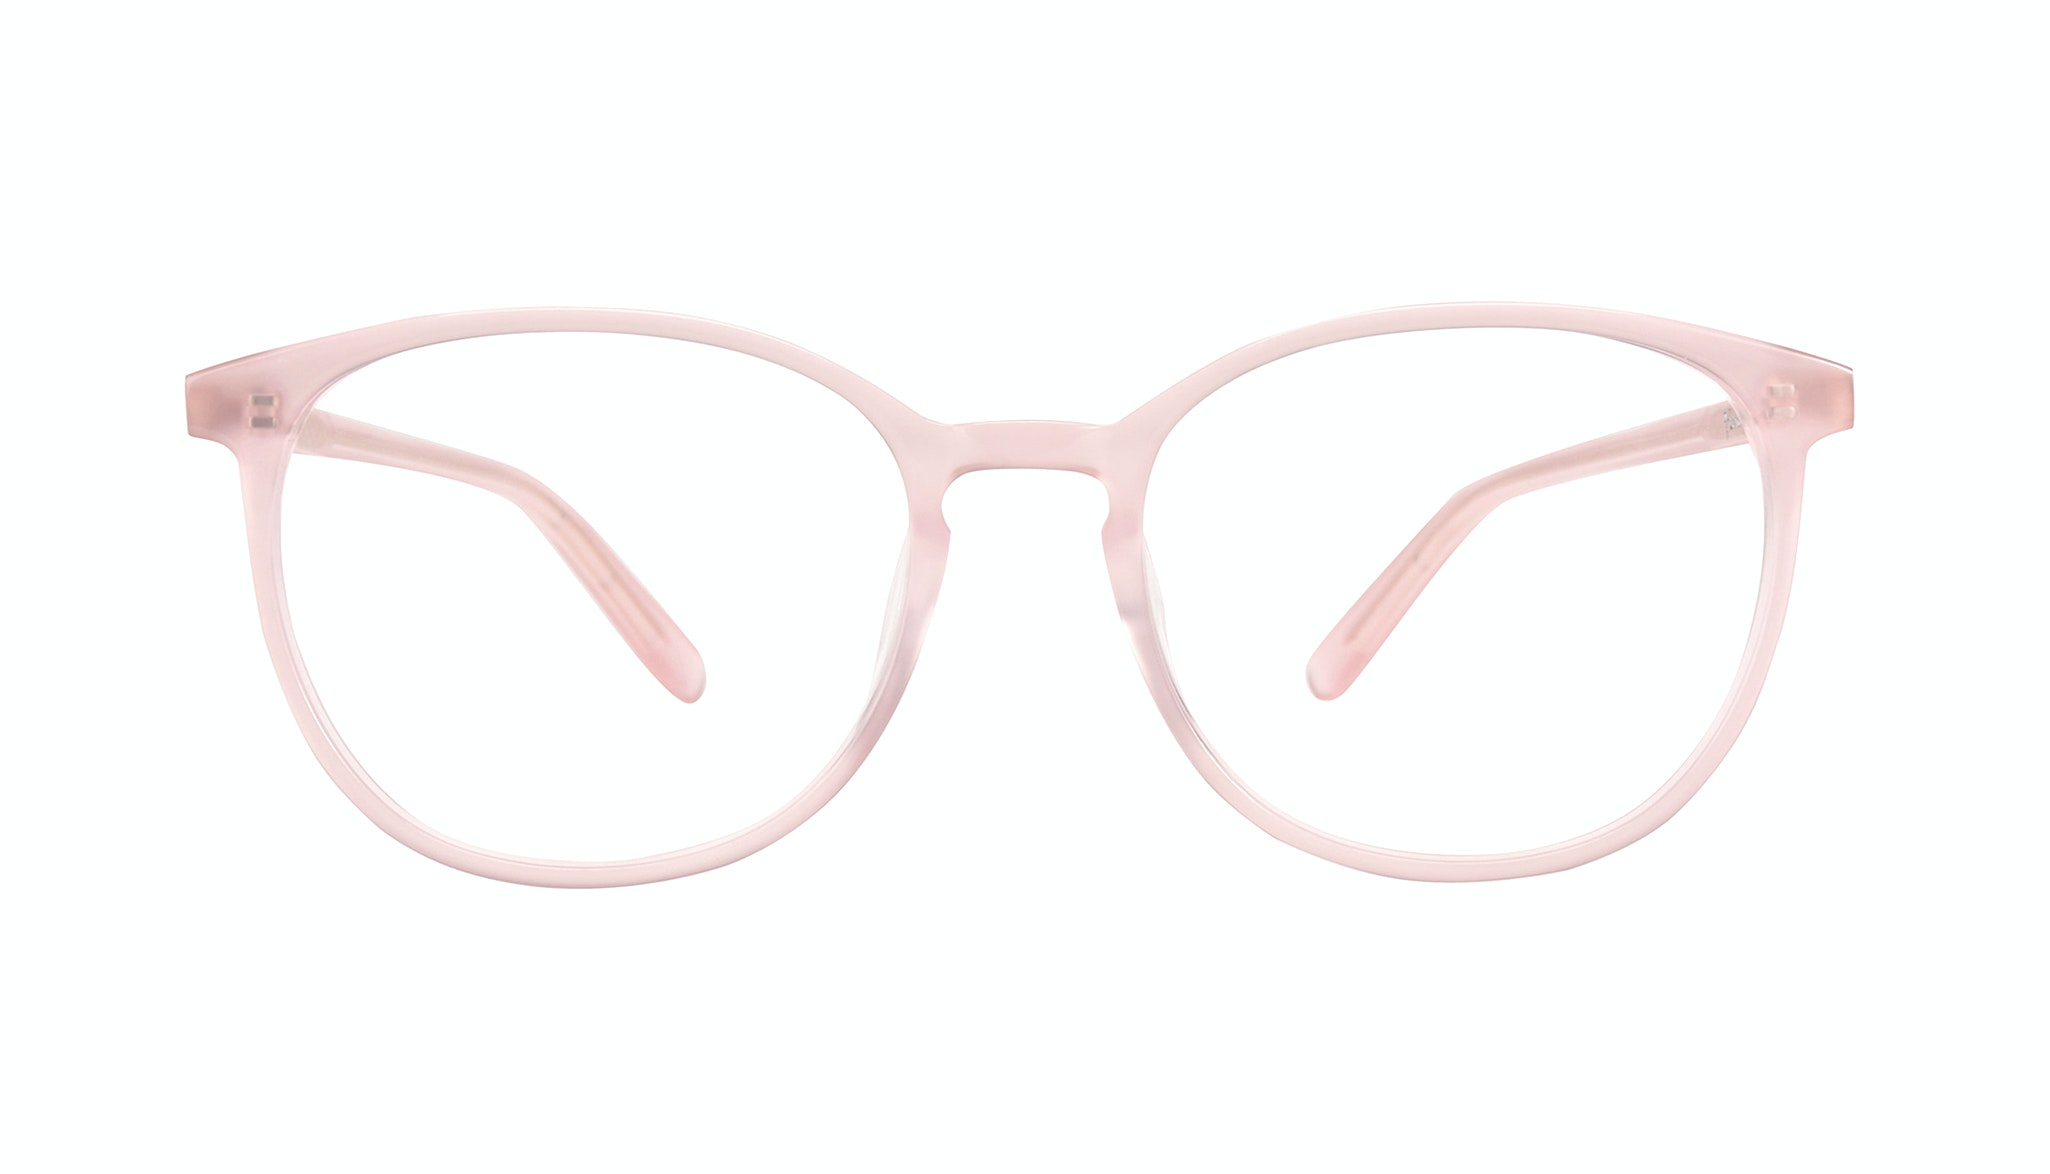 Affordable Fashion Glasses Round Eyeglasses Women Femme Libre Mila